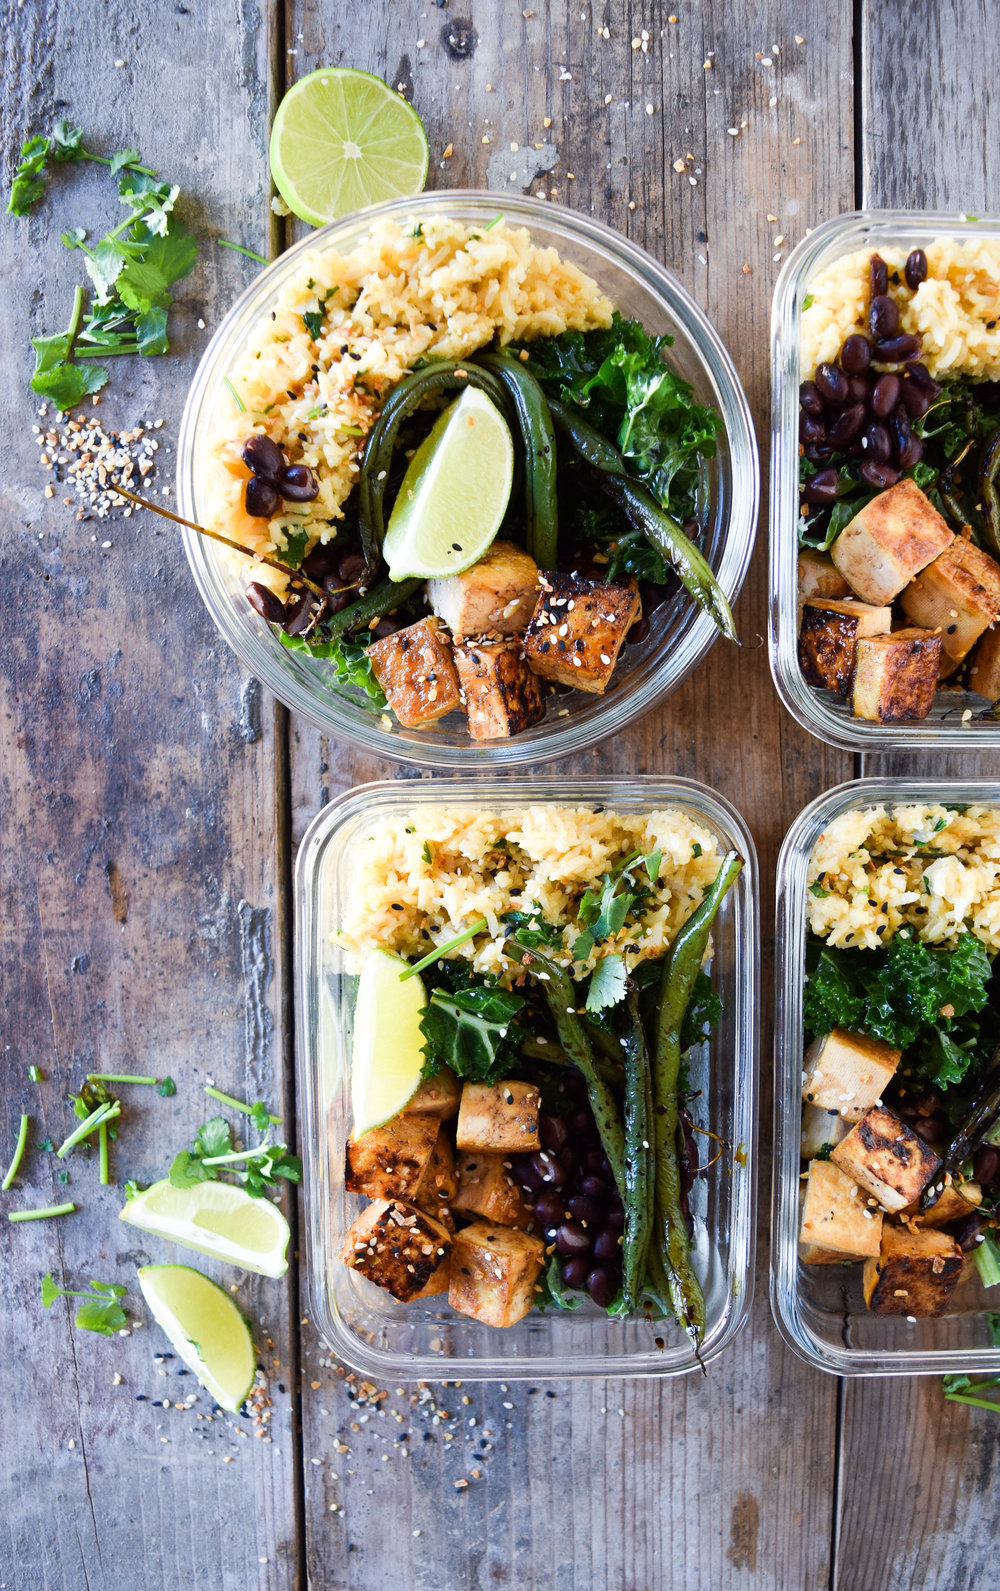 meal-prep-teriyaki-tofu-cilantro-lime-rice-veggies.jpg